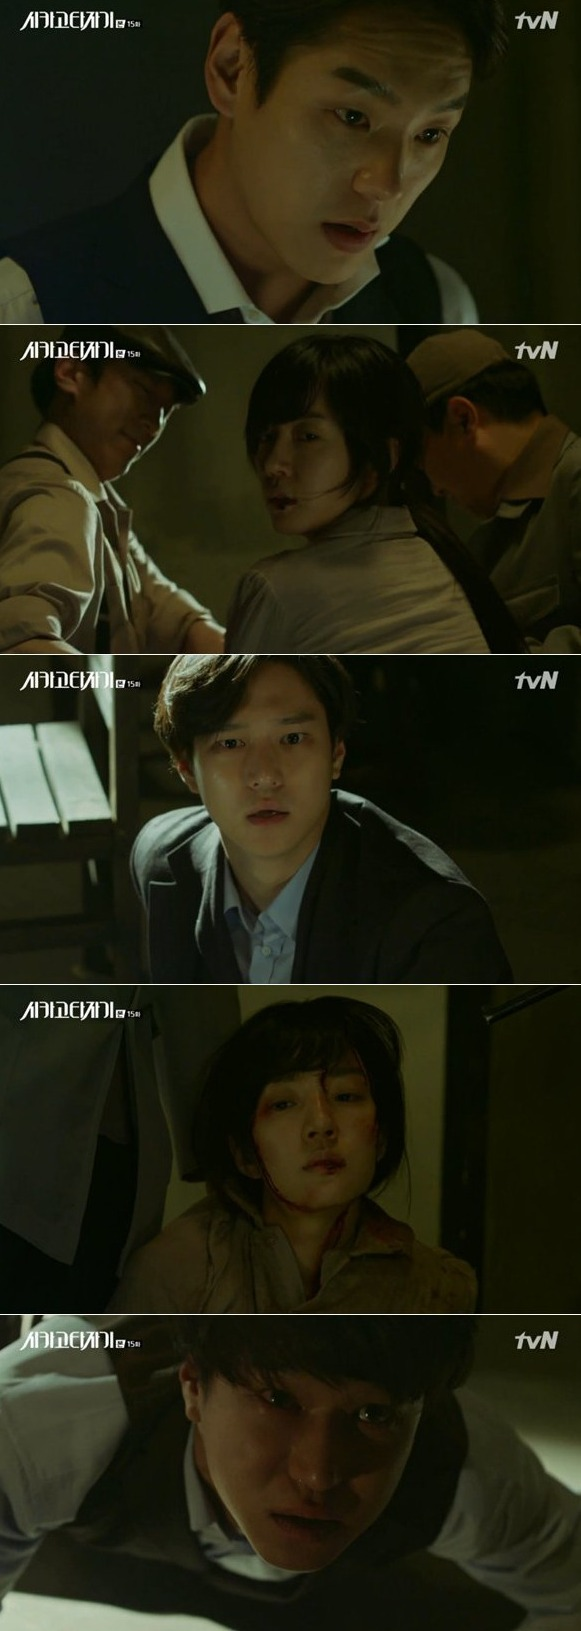 [Spoiler] Added final episodes 15 and 16 captures for the Korean drama 'Chicago Typewriter'